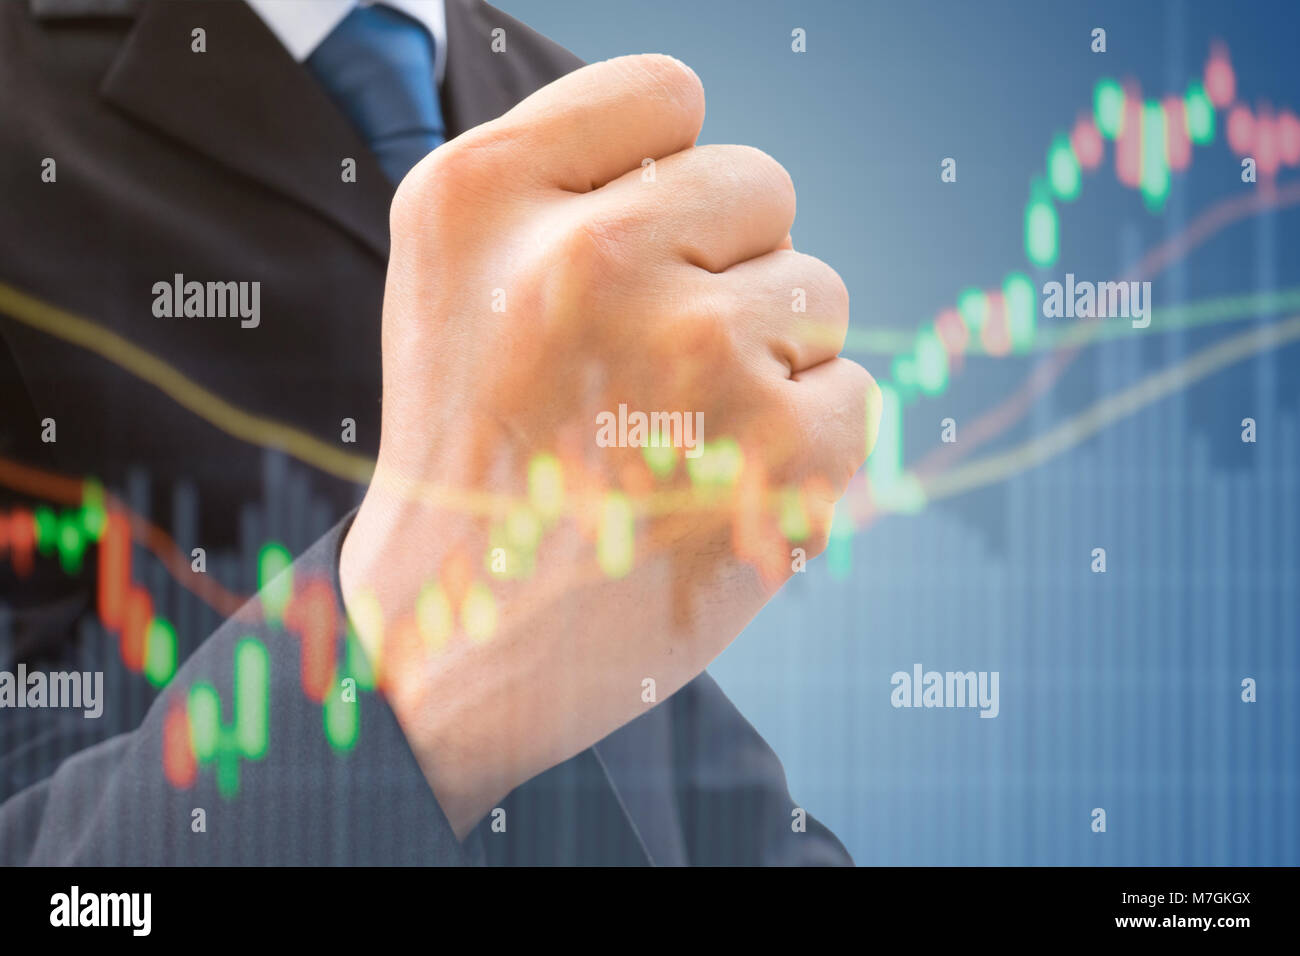 Businessman in dark gray suit raising his fist of successful and happiness in stock market rising and making profit - Stock Image